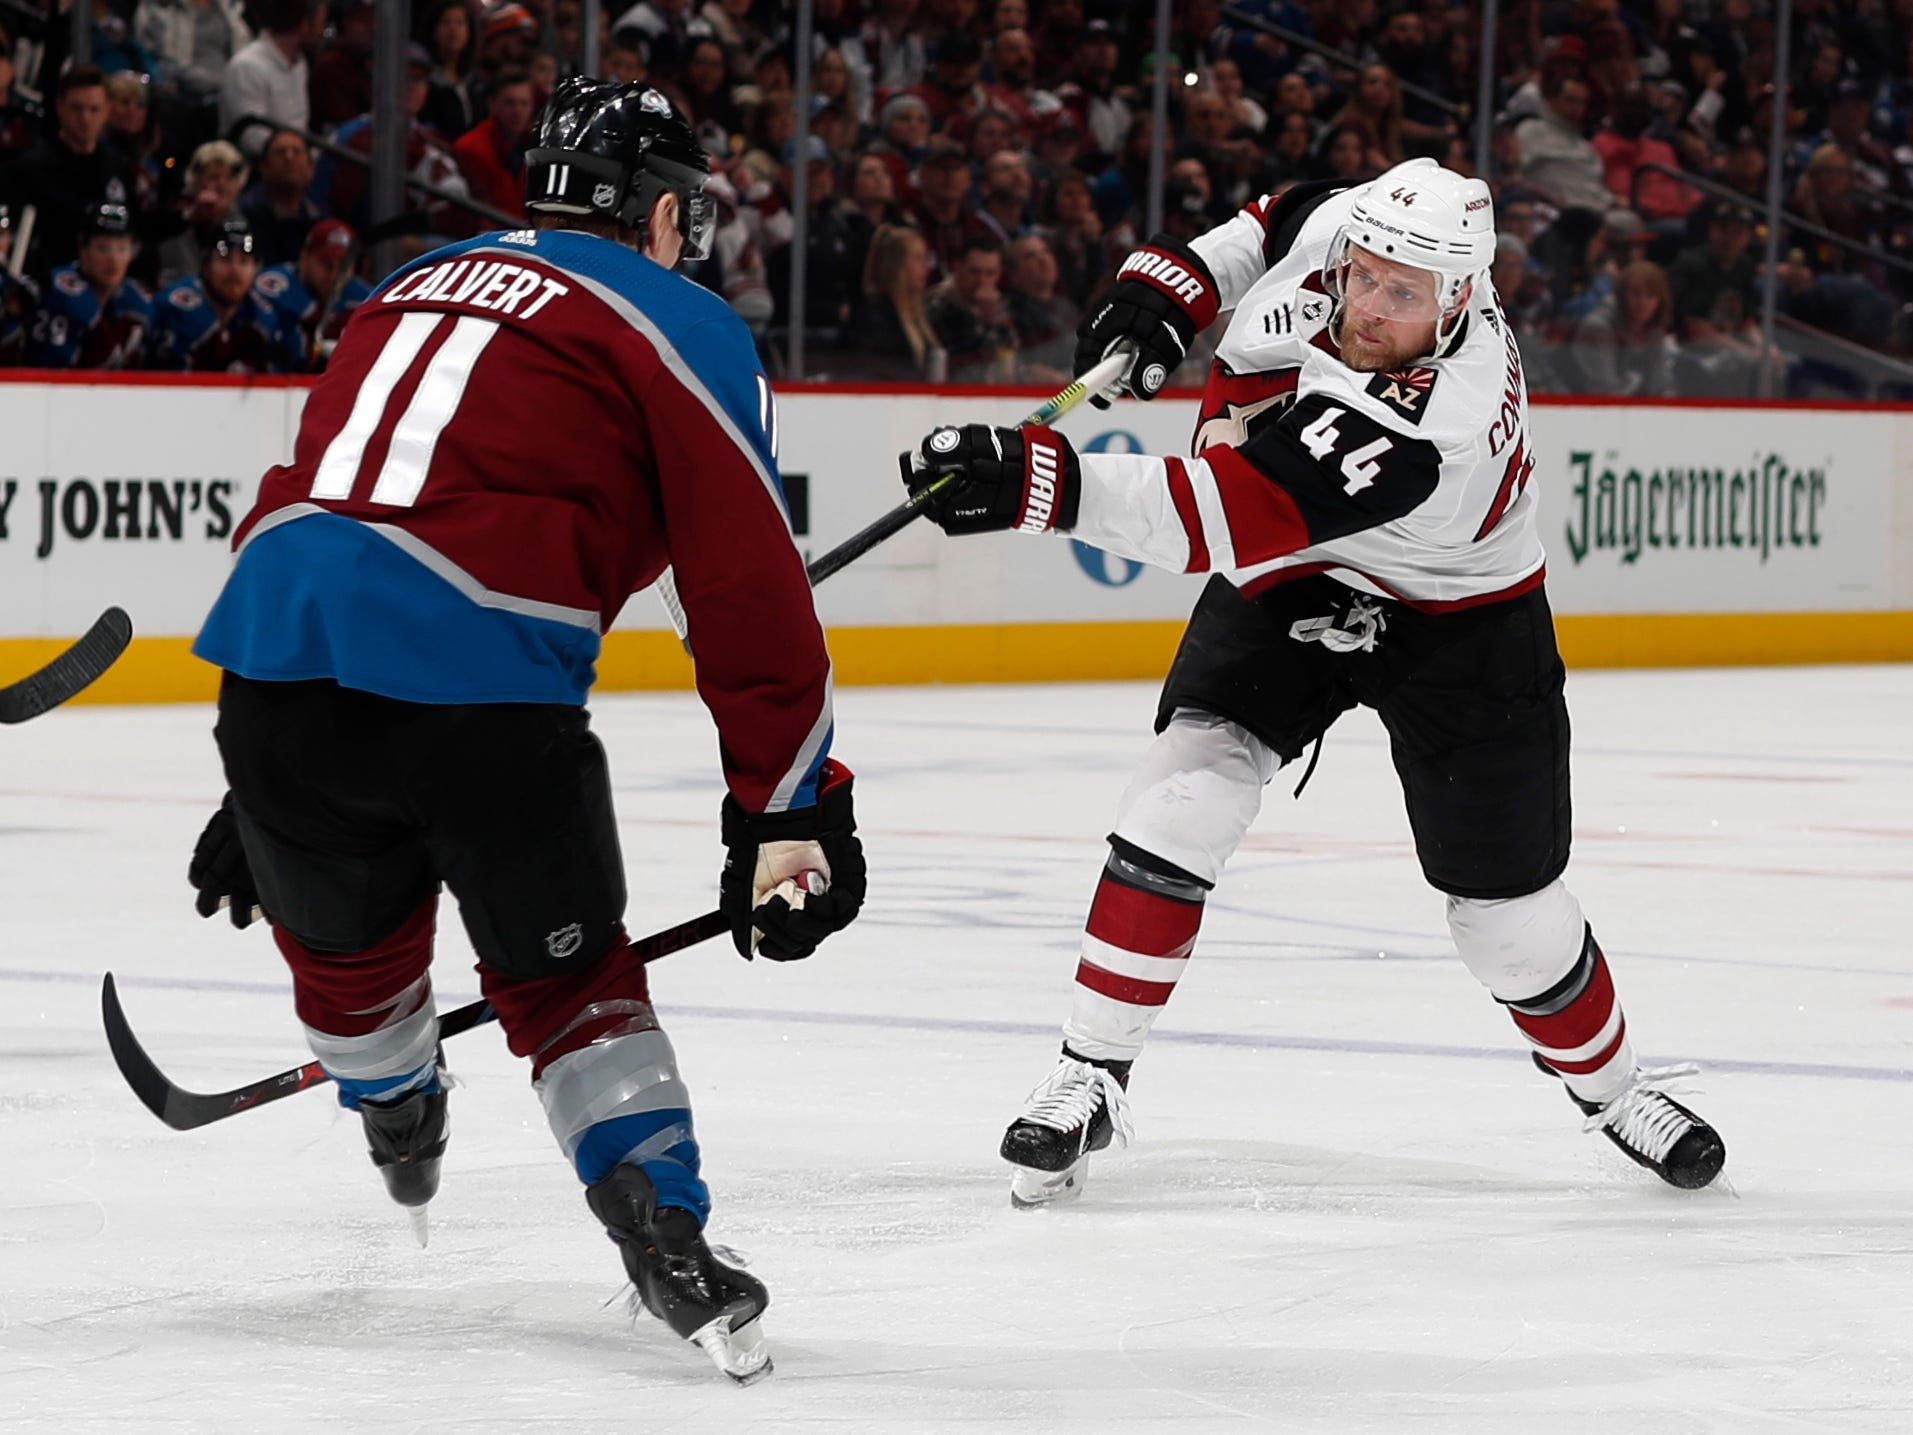 Arizona Coyotes defenseman Kevin Connauton, right, shoots the puck past Colorado Avalanche left wing Matt Calvert in the second period of an NHL hockey game Friday, March 29, 2019, in Denver.